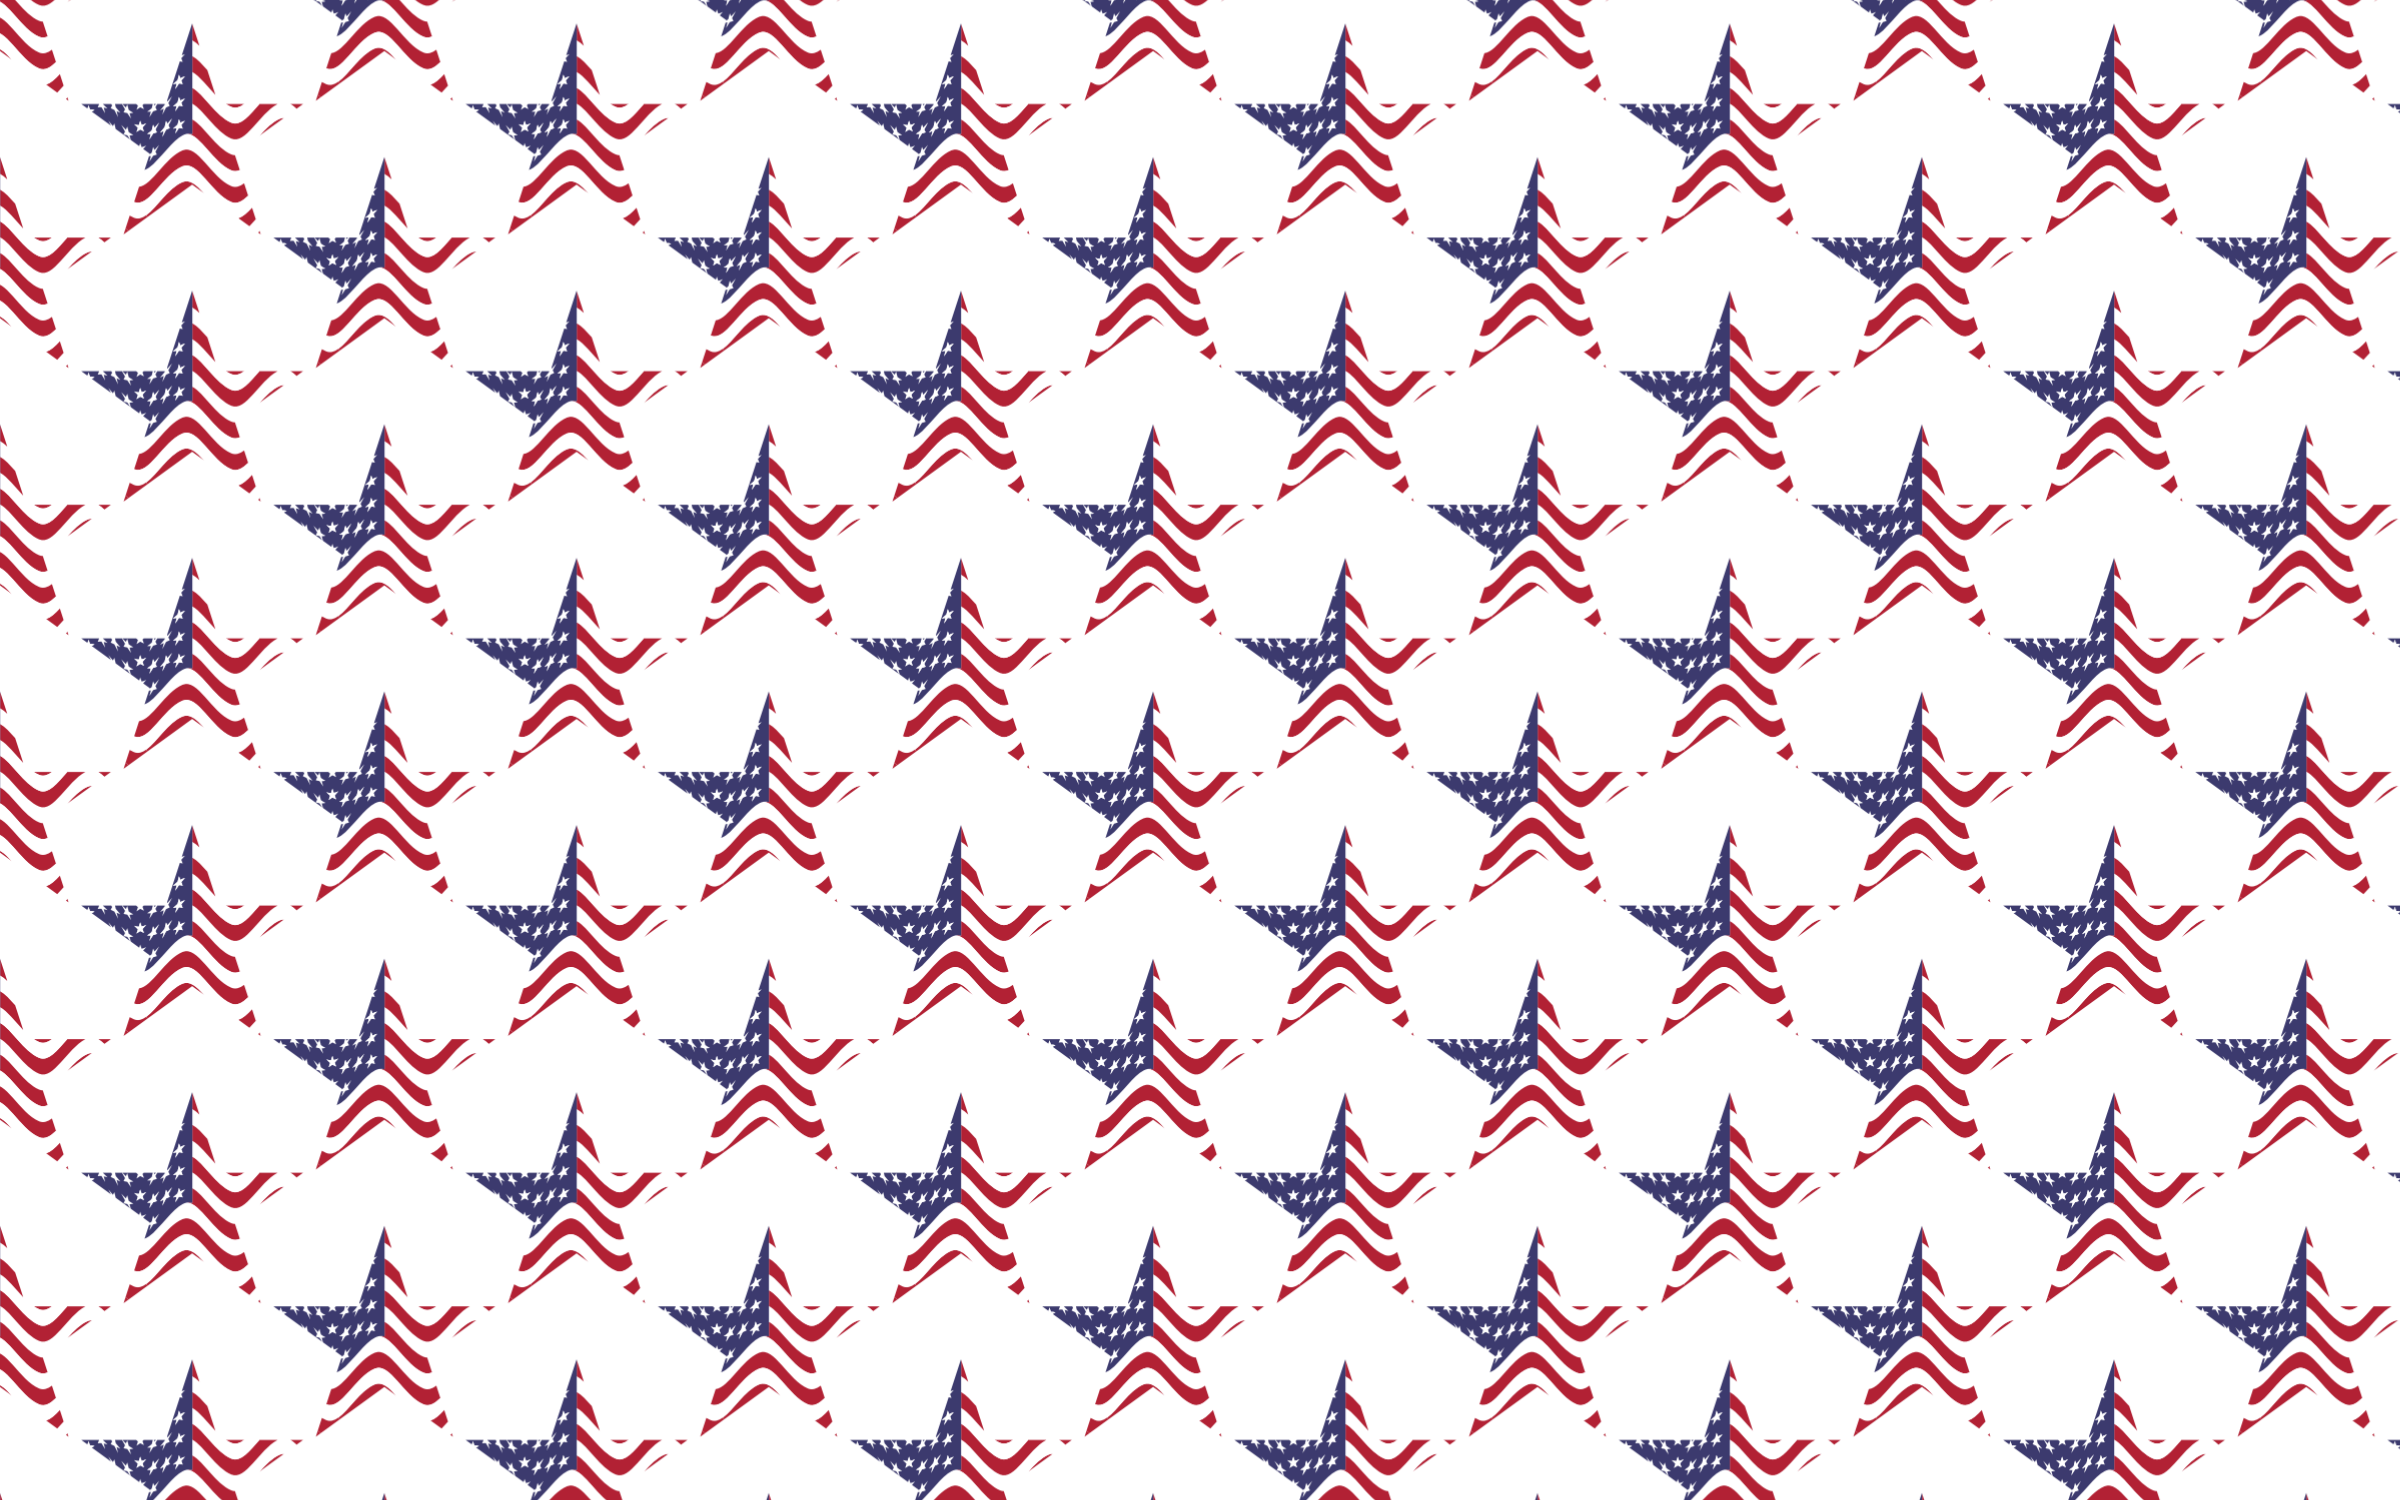 Seamless USA Flag Star Pattern by GDJ